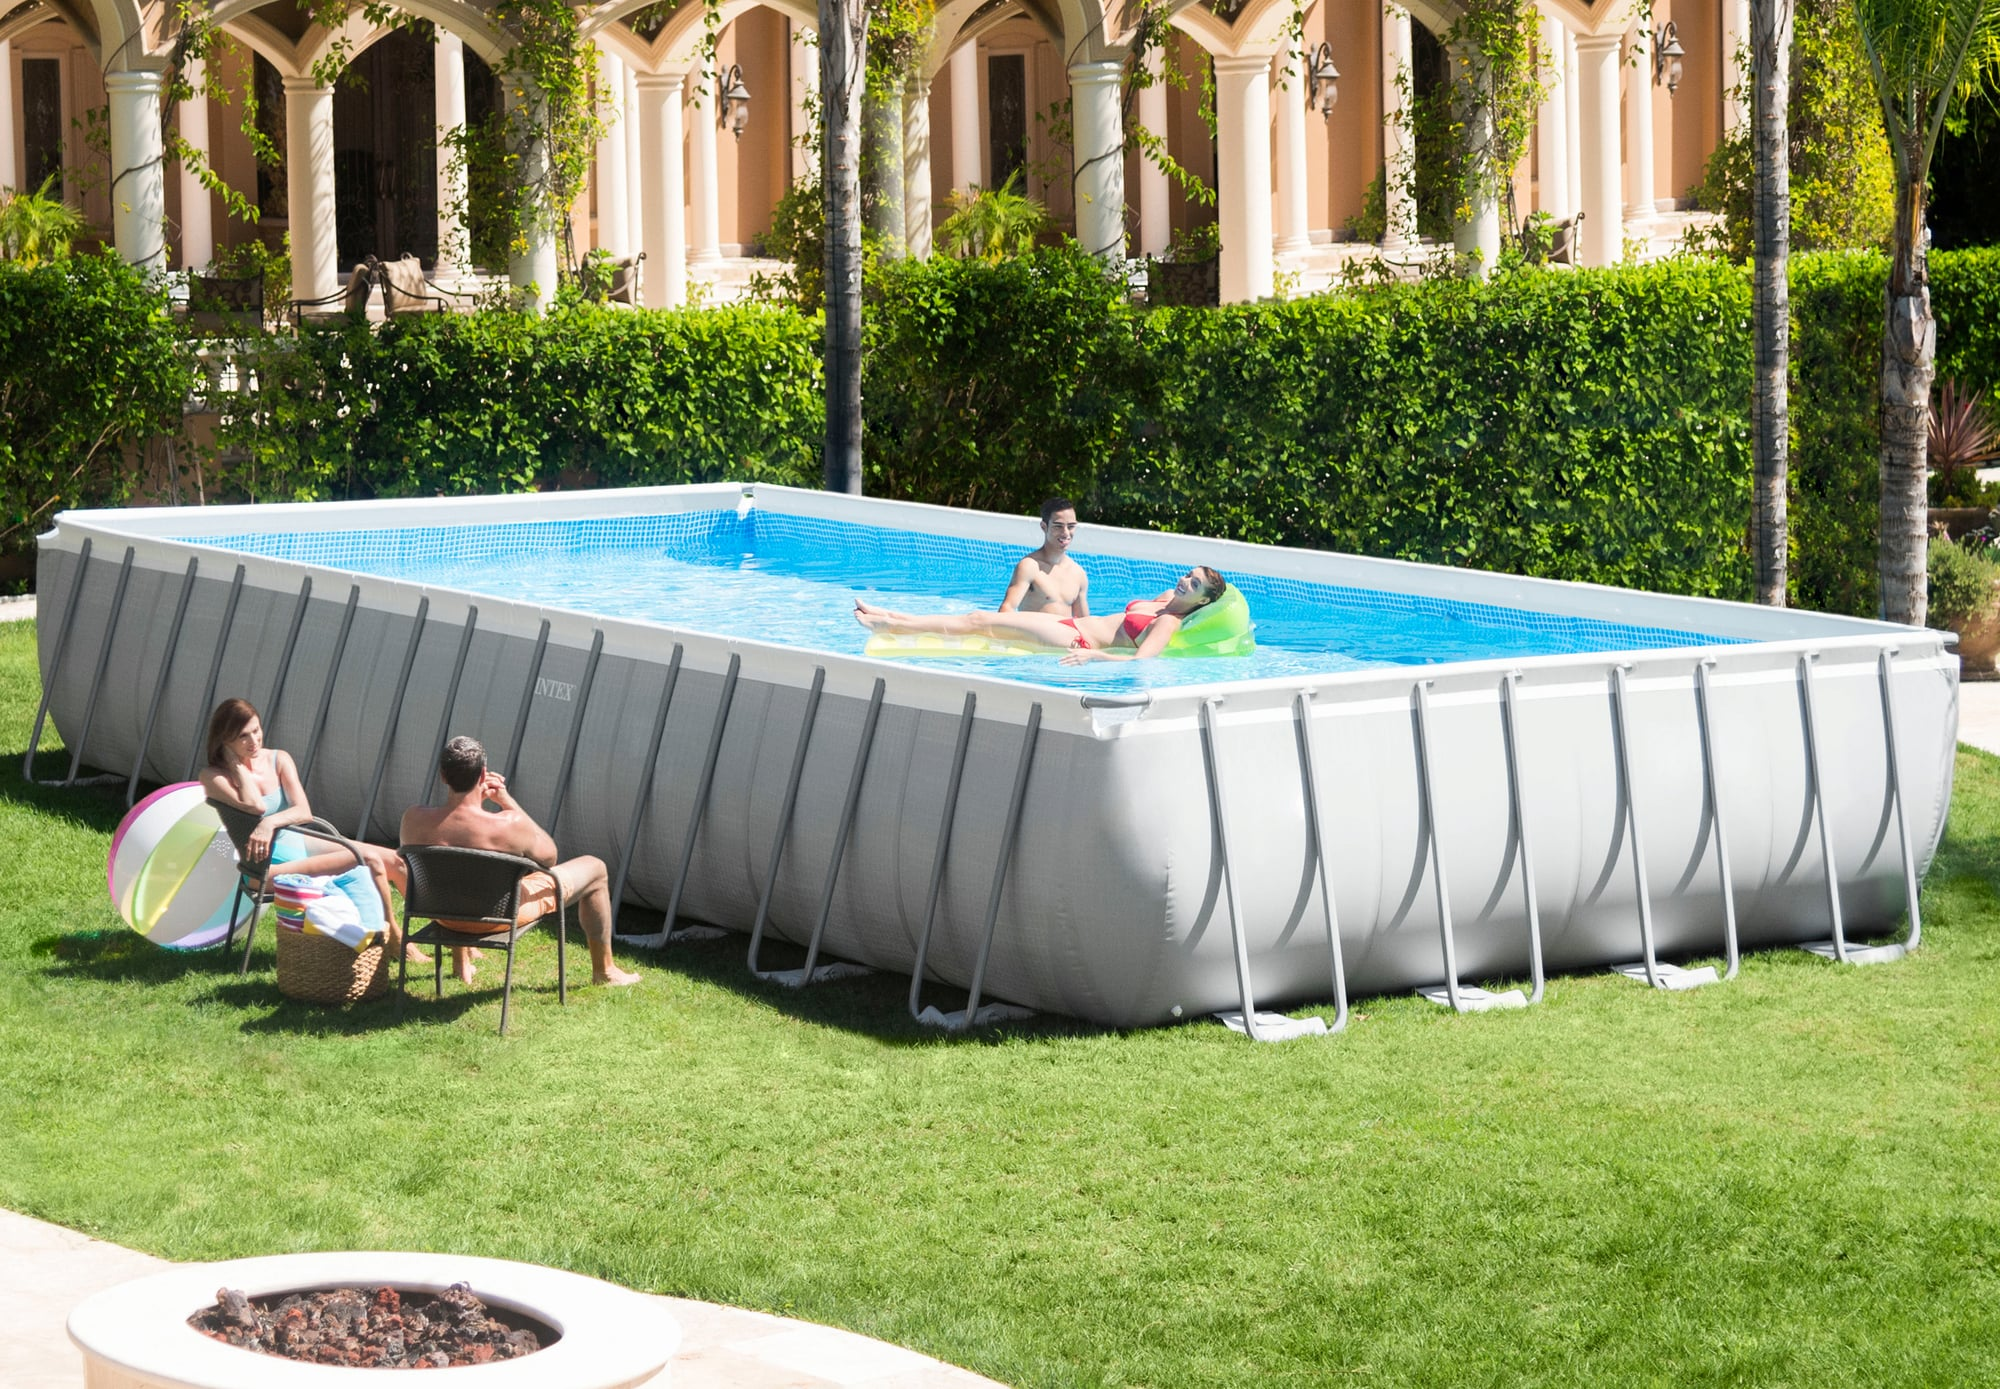 Abdeckplane Intex Pool 488 Intex Frame Pool Ultra Quadra 975 X 488 X 132 Cm, 1 Set